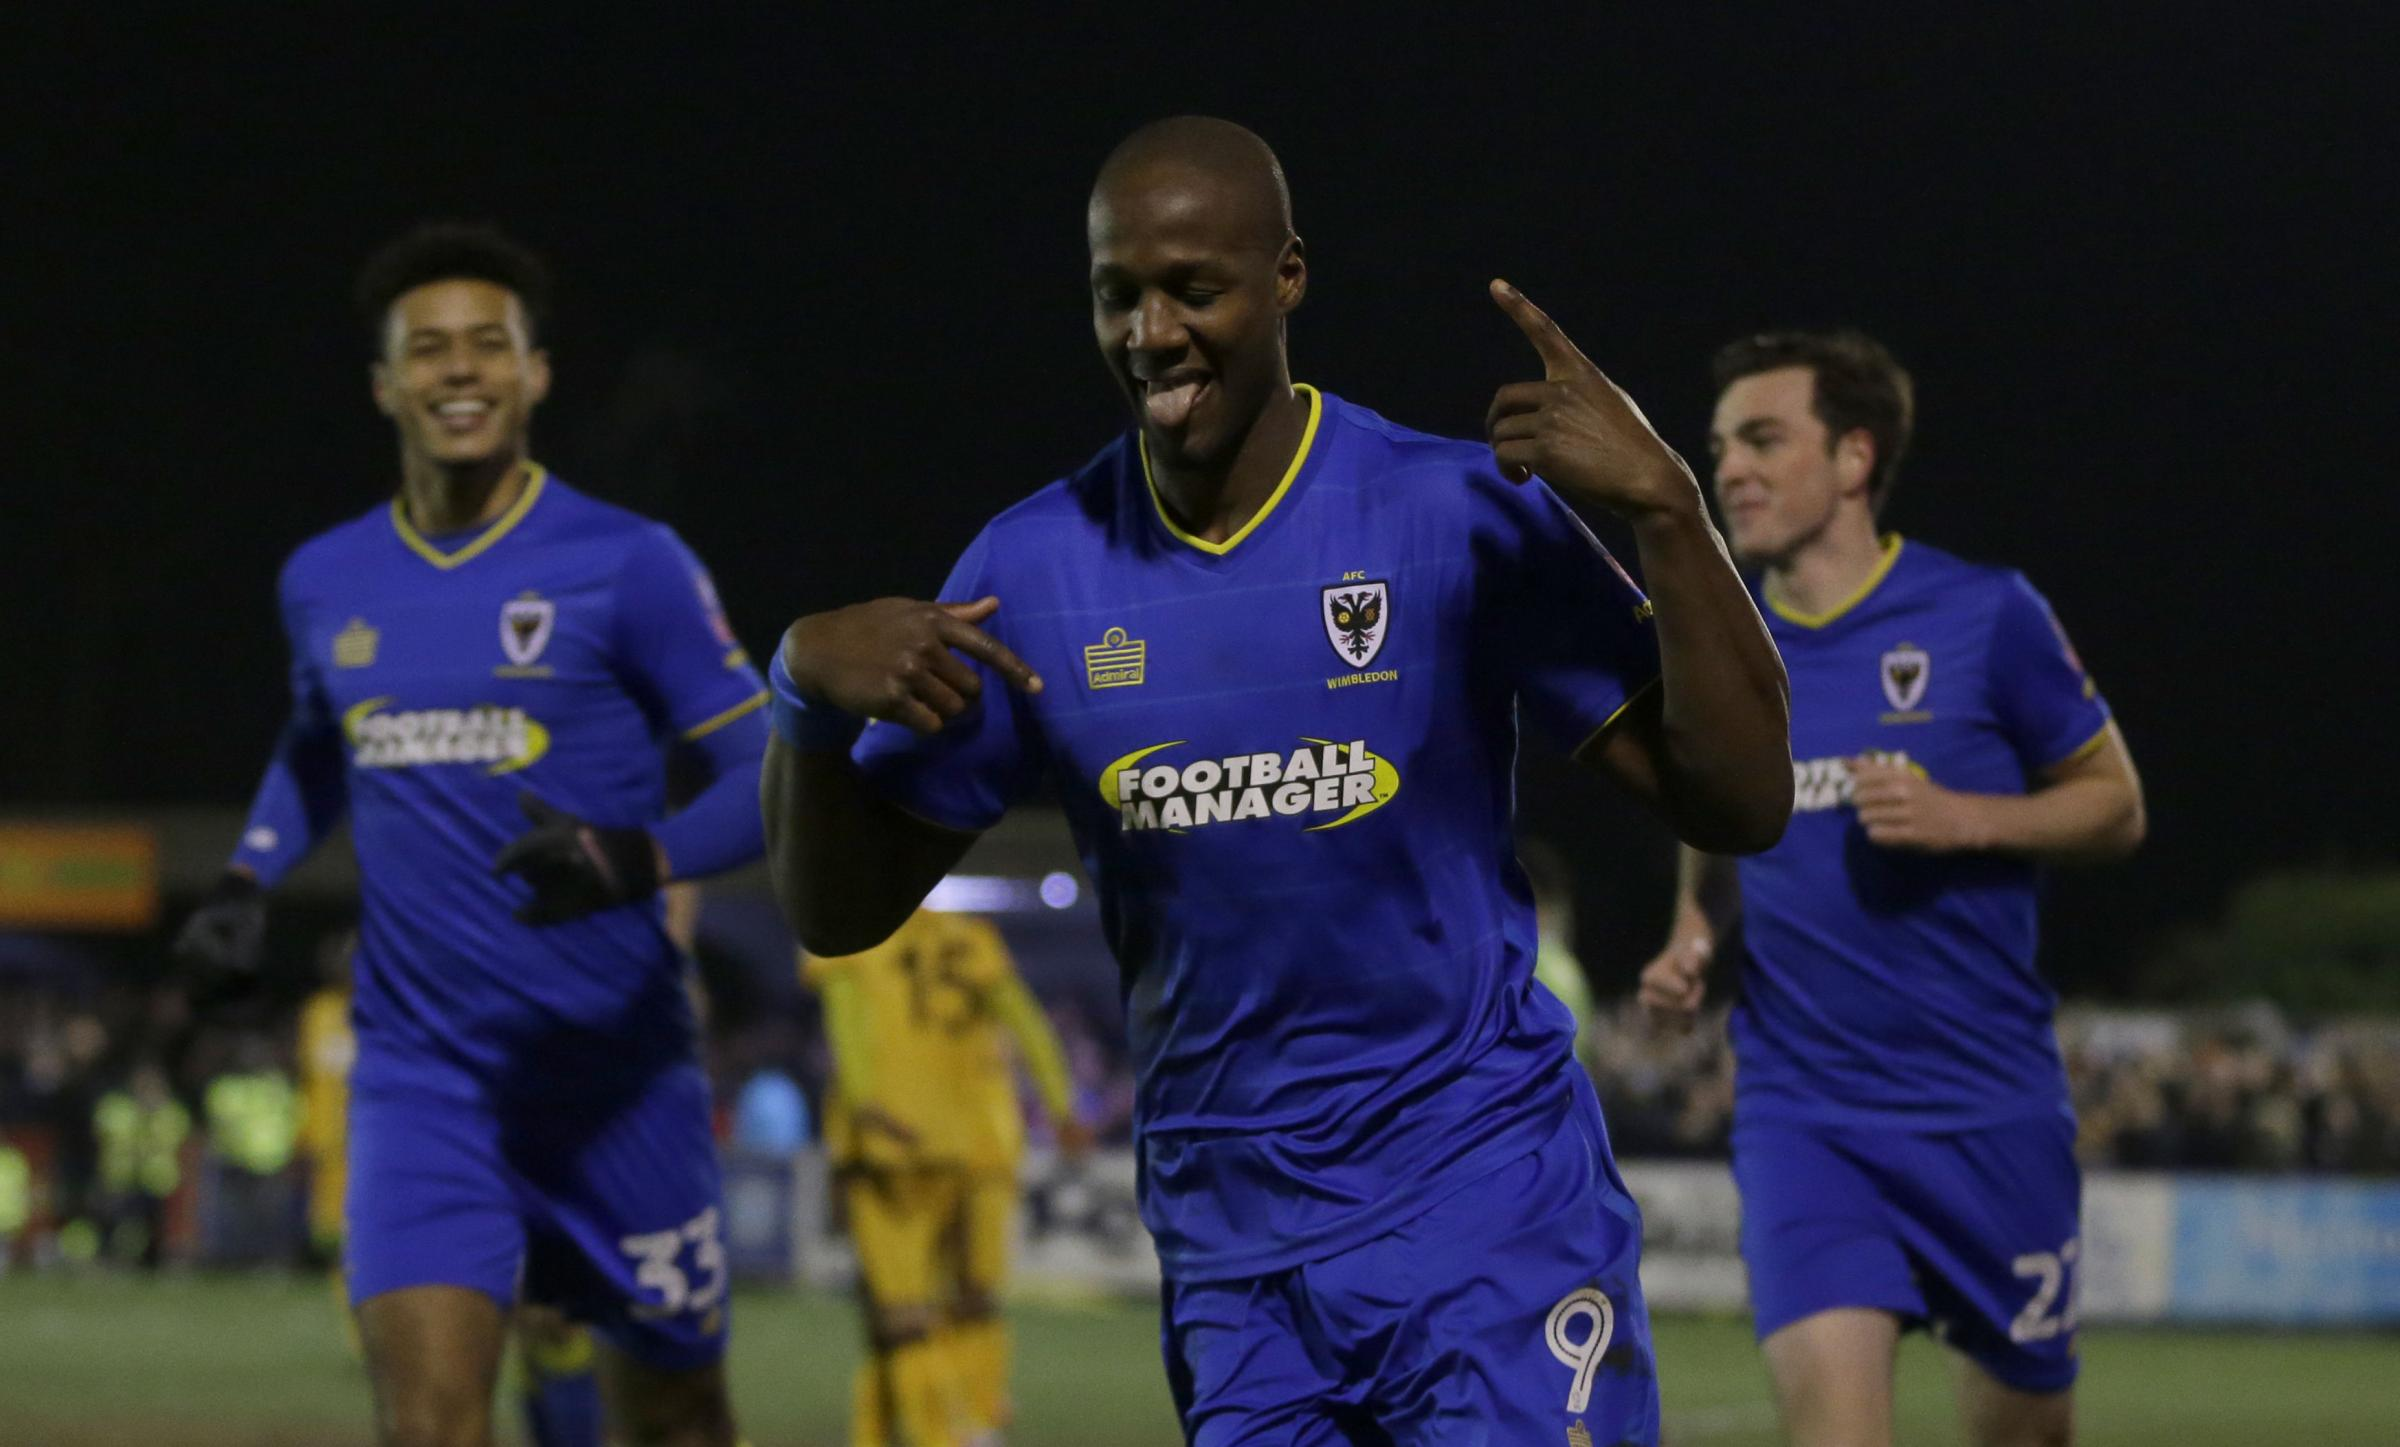 AFC Wimbledon's Tom Elliott celebrates after scoring against Sutton United - but the night was to end is disappointment for the Dons